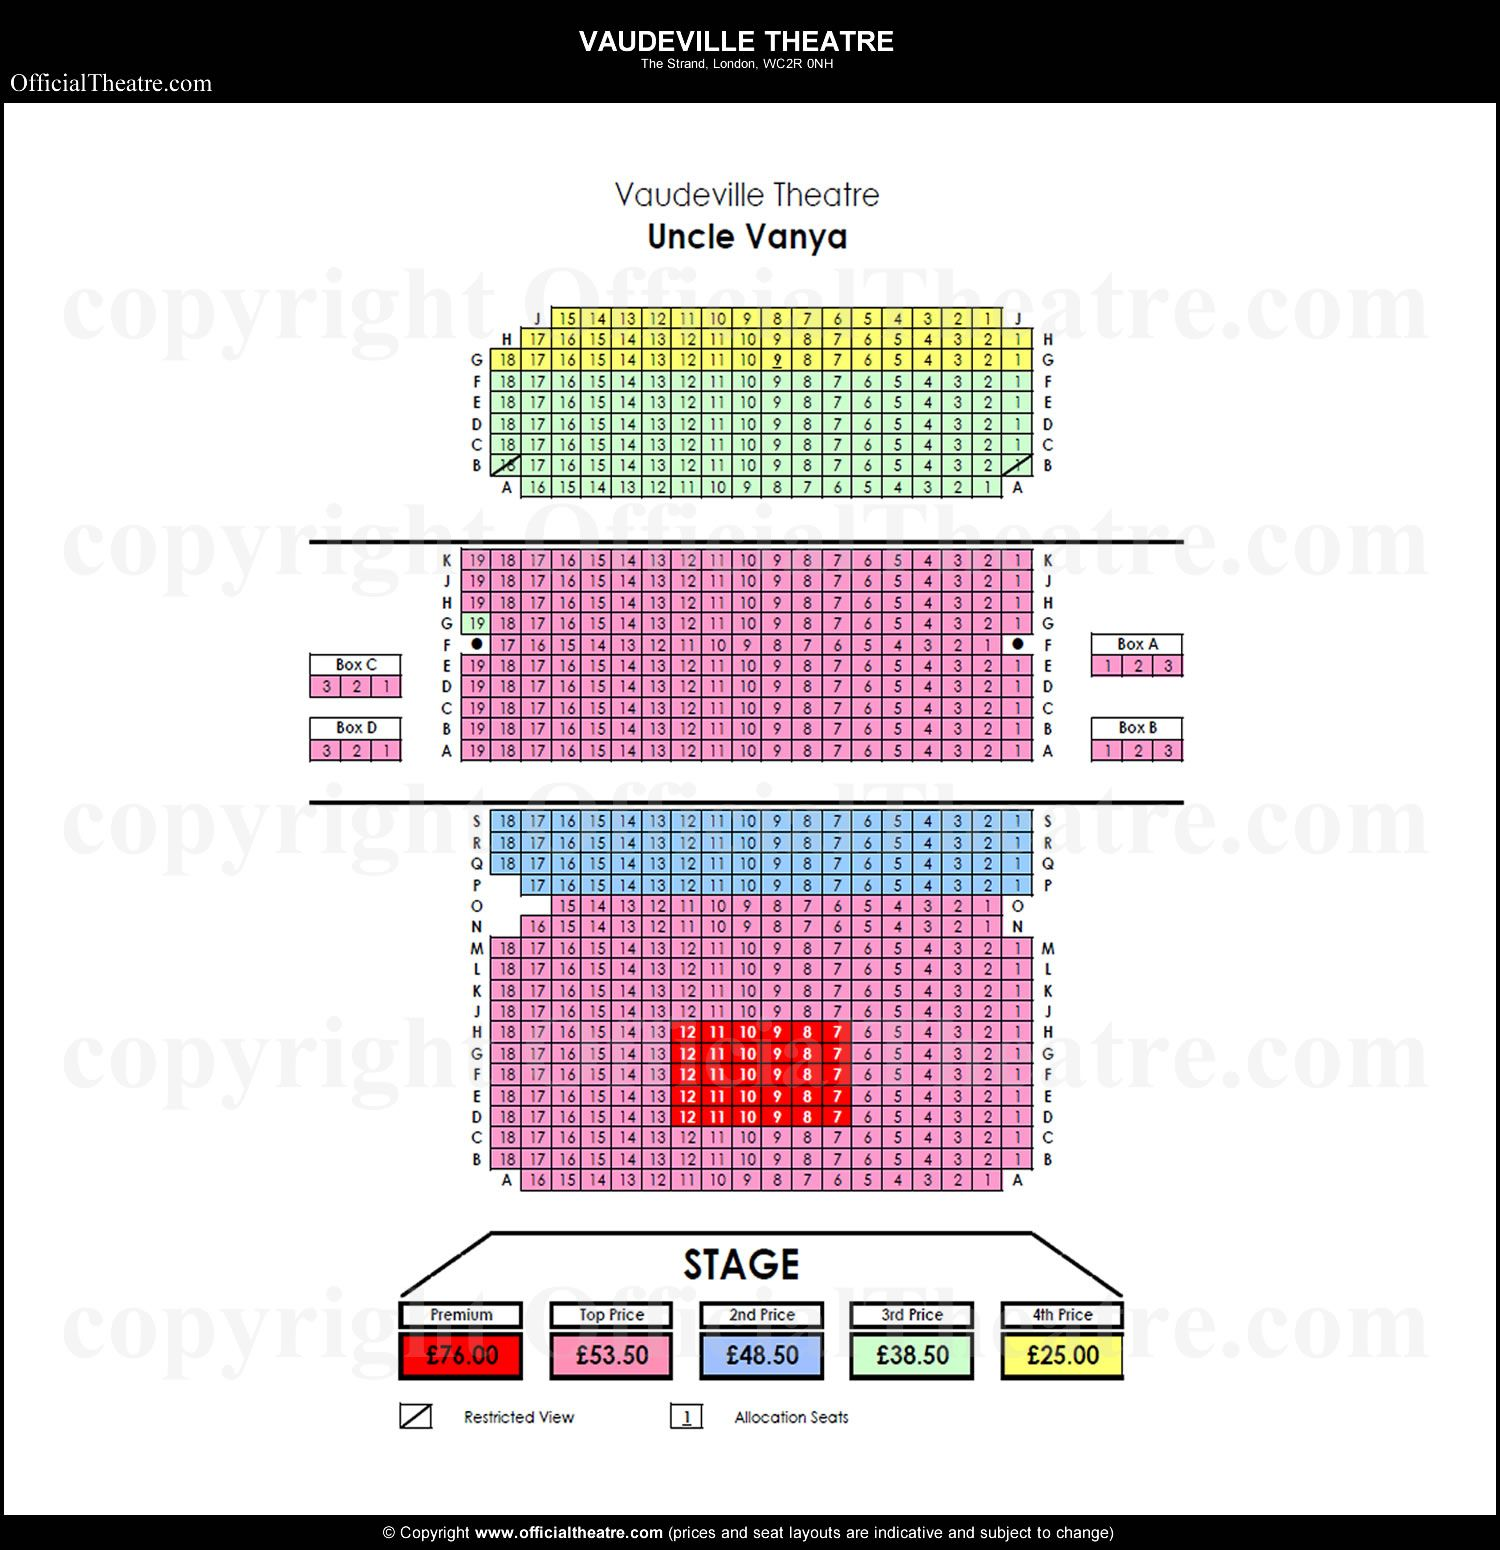 vaudeville theatre seating plan and price guide vaudeville